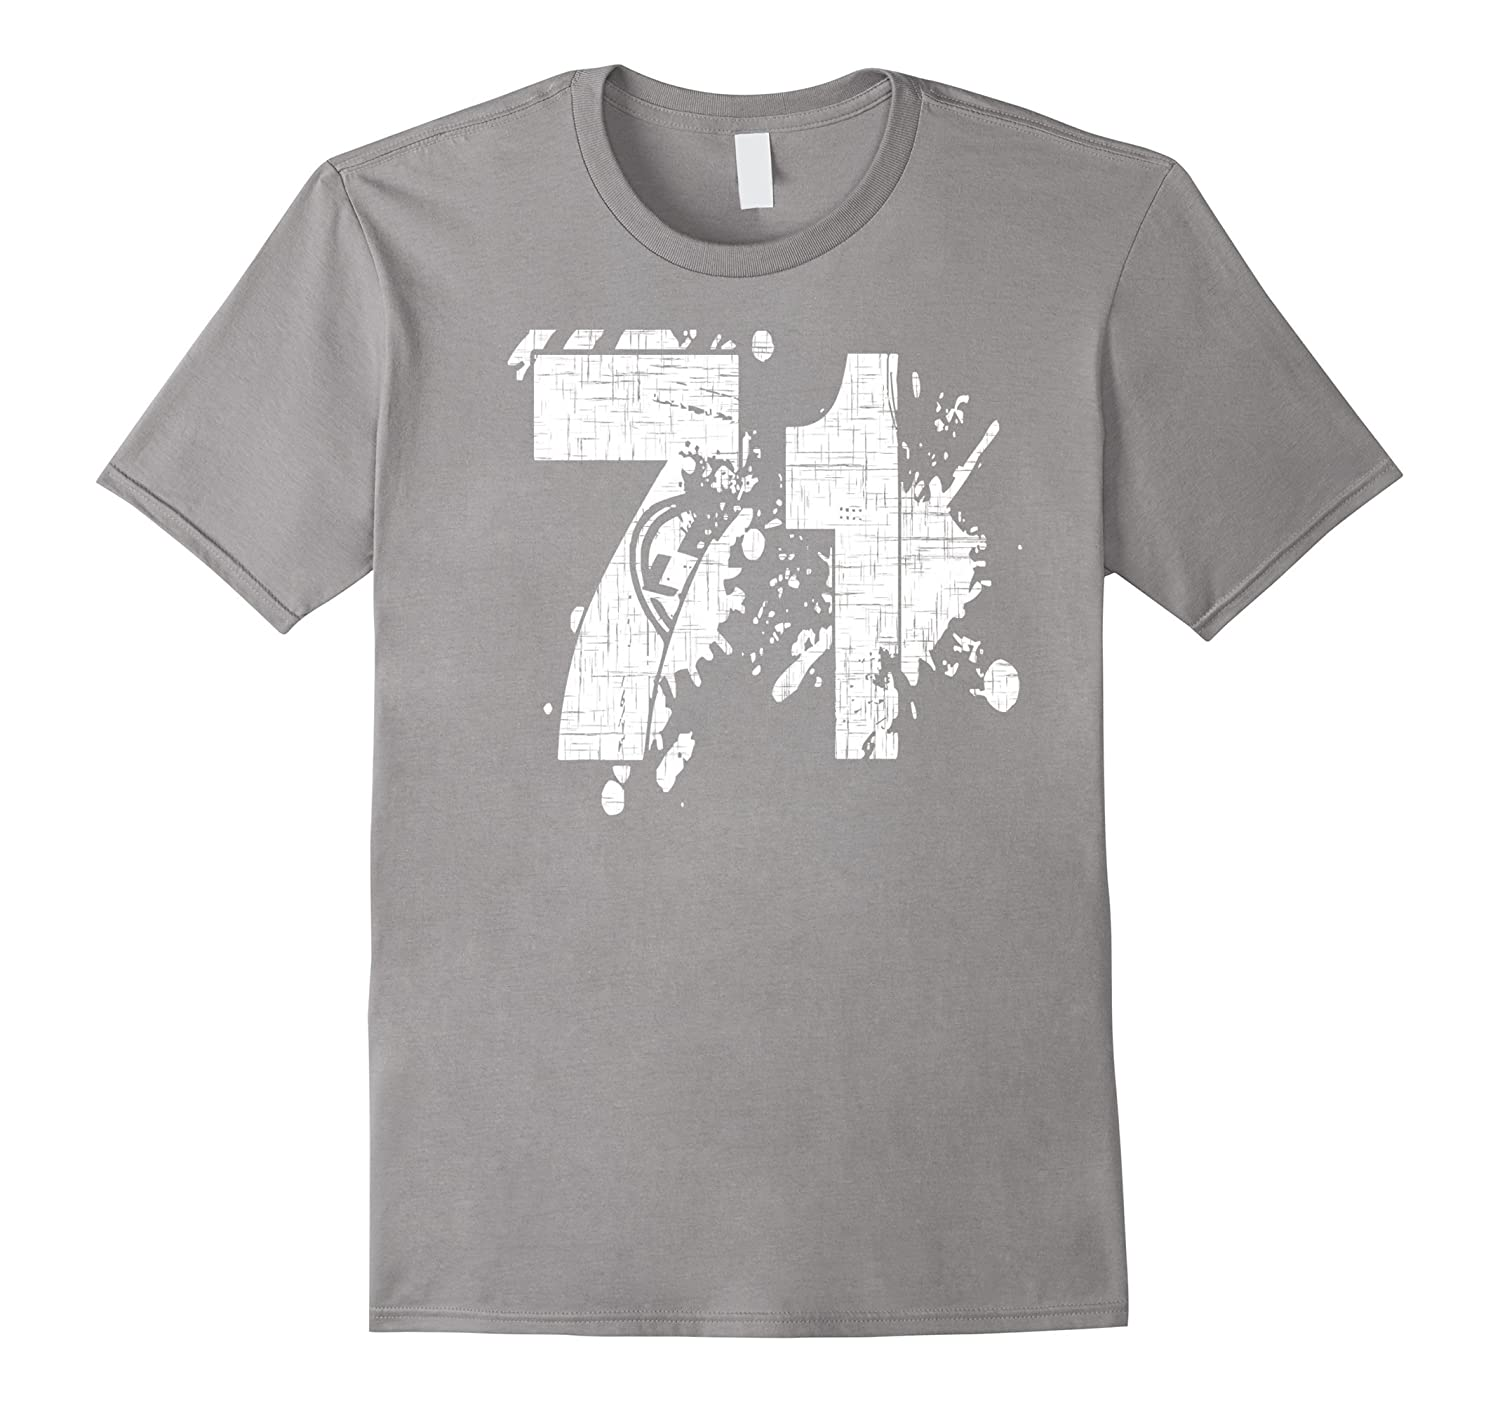 71 Team T-Shirts printed front and back in super grunge-PL